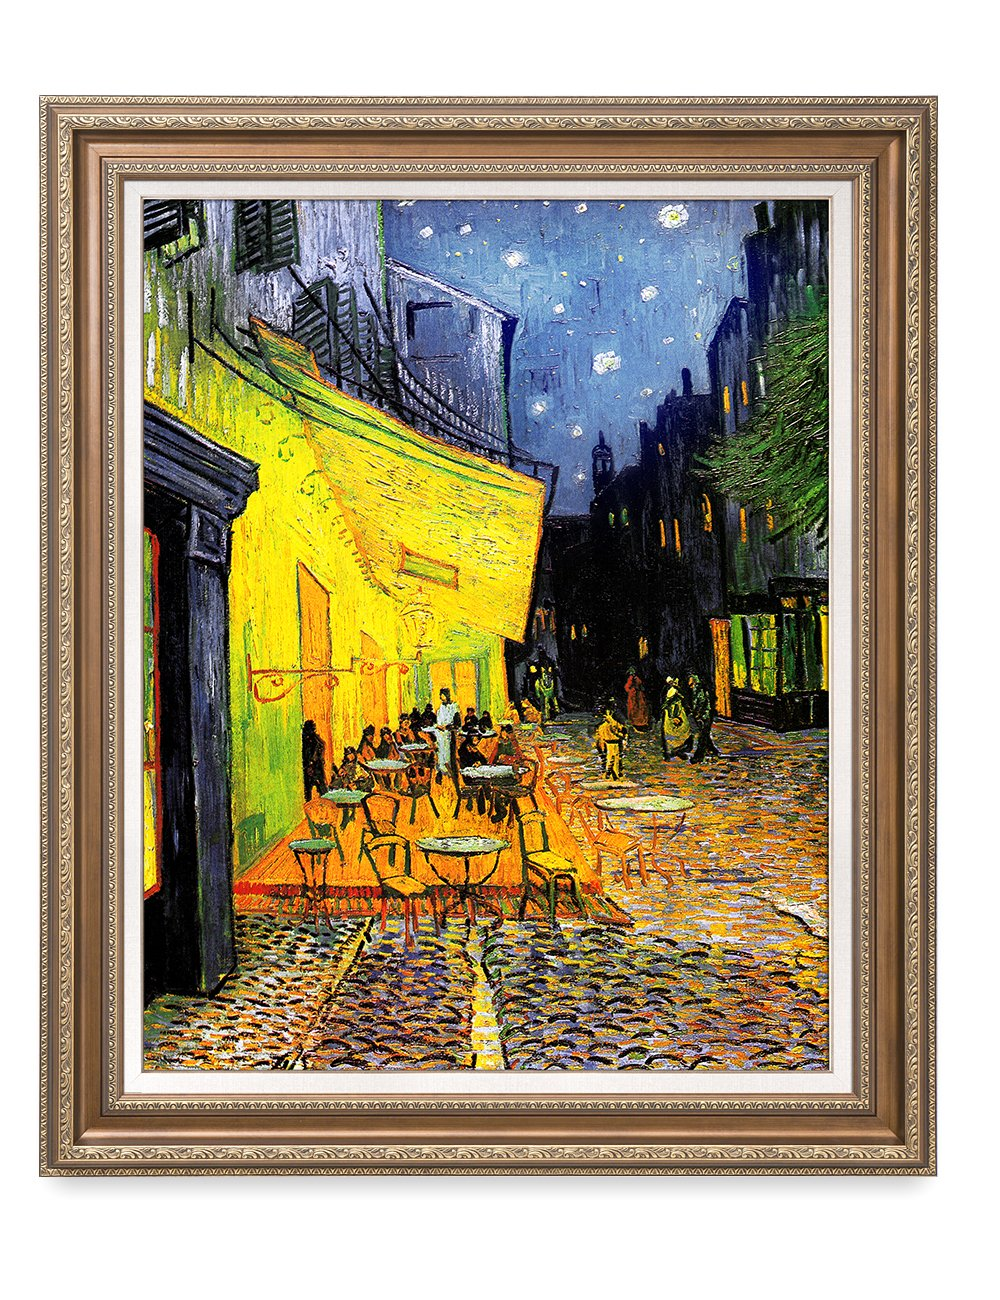 DecorArts - Cafe Terrace At Night, Vincent Van Gogh Art Reproduction. giclee prints Framed Art for Wall Decor. Framed size: 36x30'' by DECORARTS